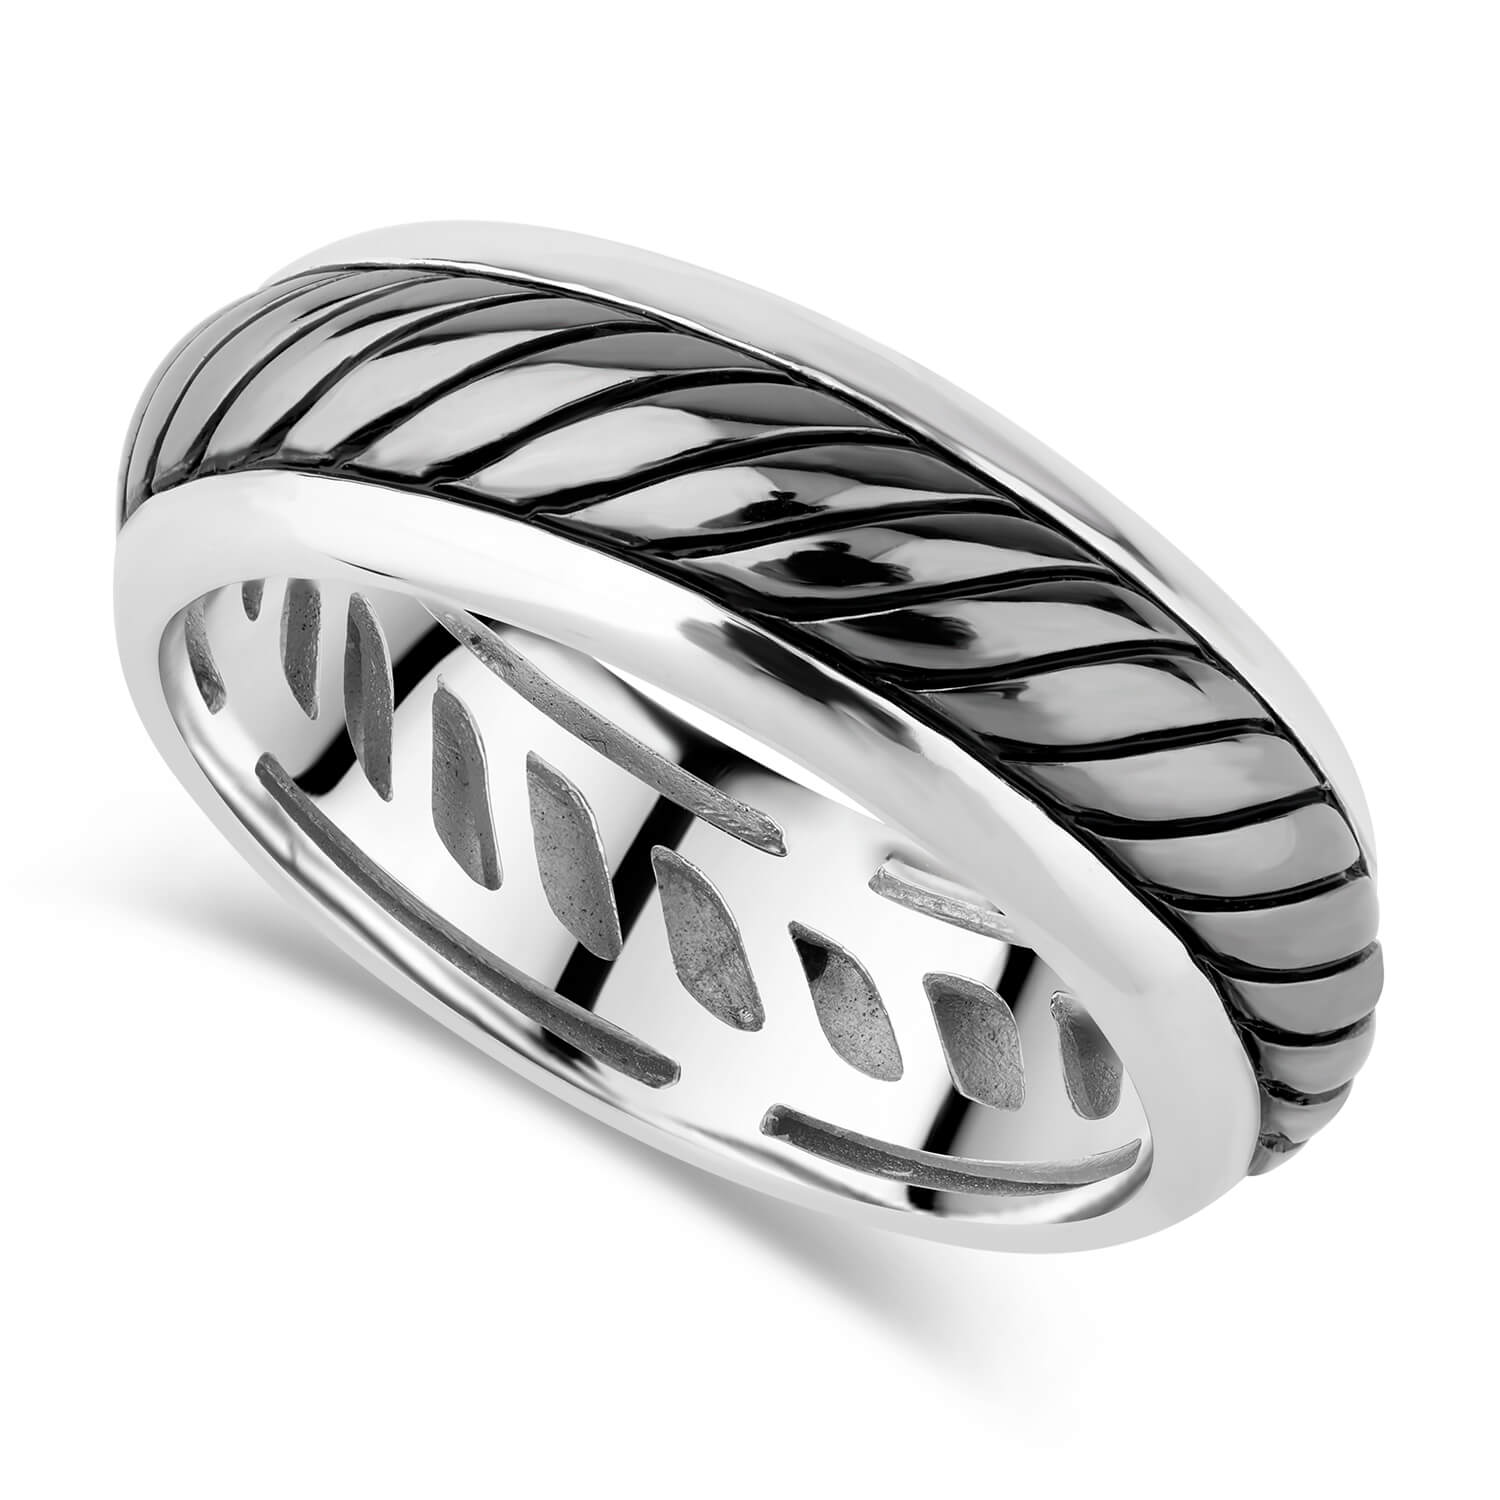 Gents Sterling Silver Oxidised Twist Band